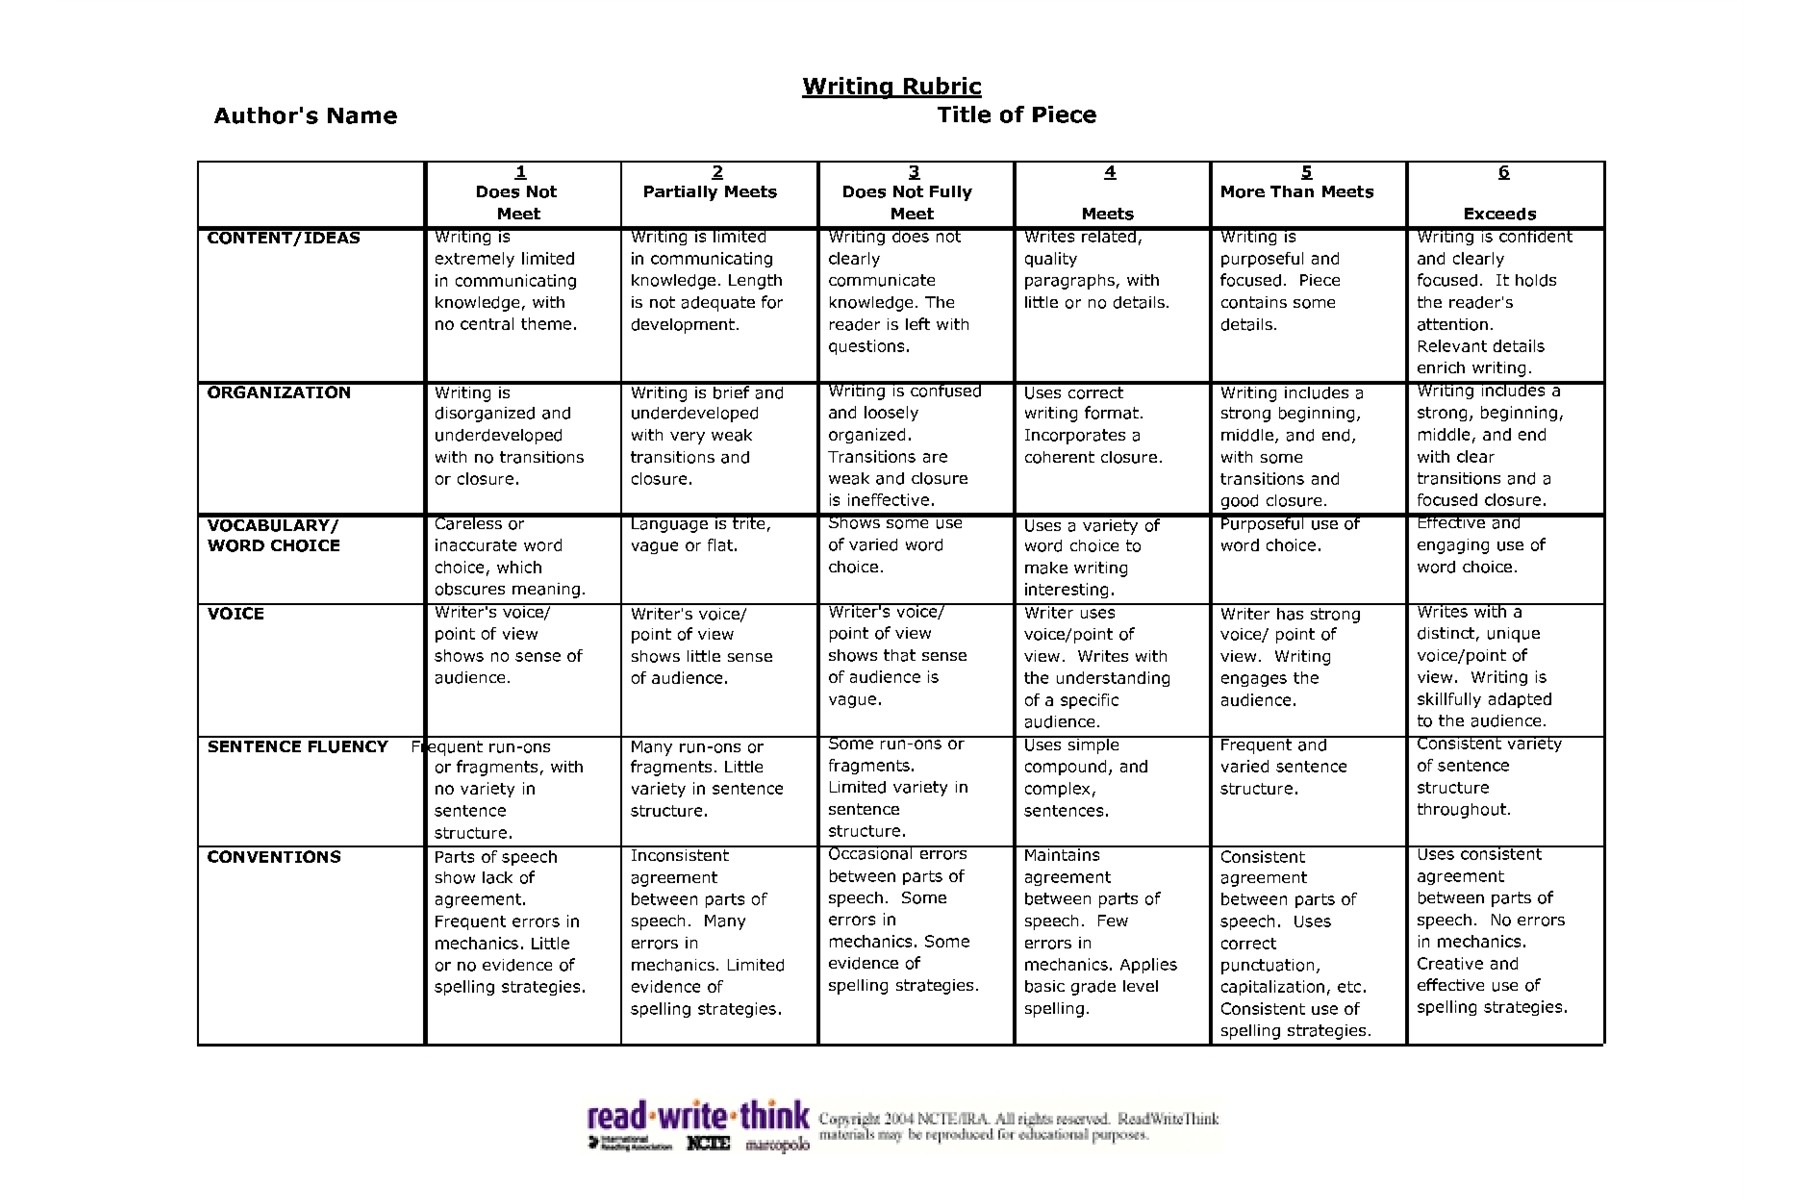 five paragraph essay rubric 6th grade The above 5 paragraph essay outline, can significantly help one to articulate his or her main points in an organized manner most instructors will require this kind of a format in their assignments these instructors in most cases provide a 5 paragraph essay rubric to guide the students.